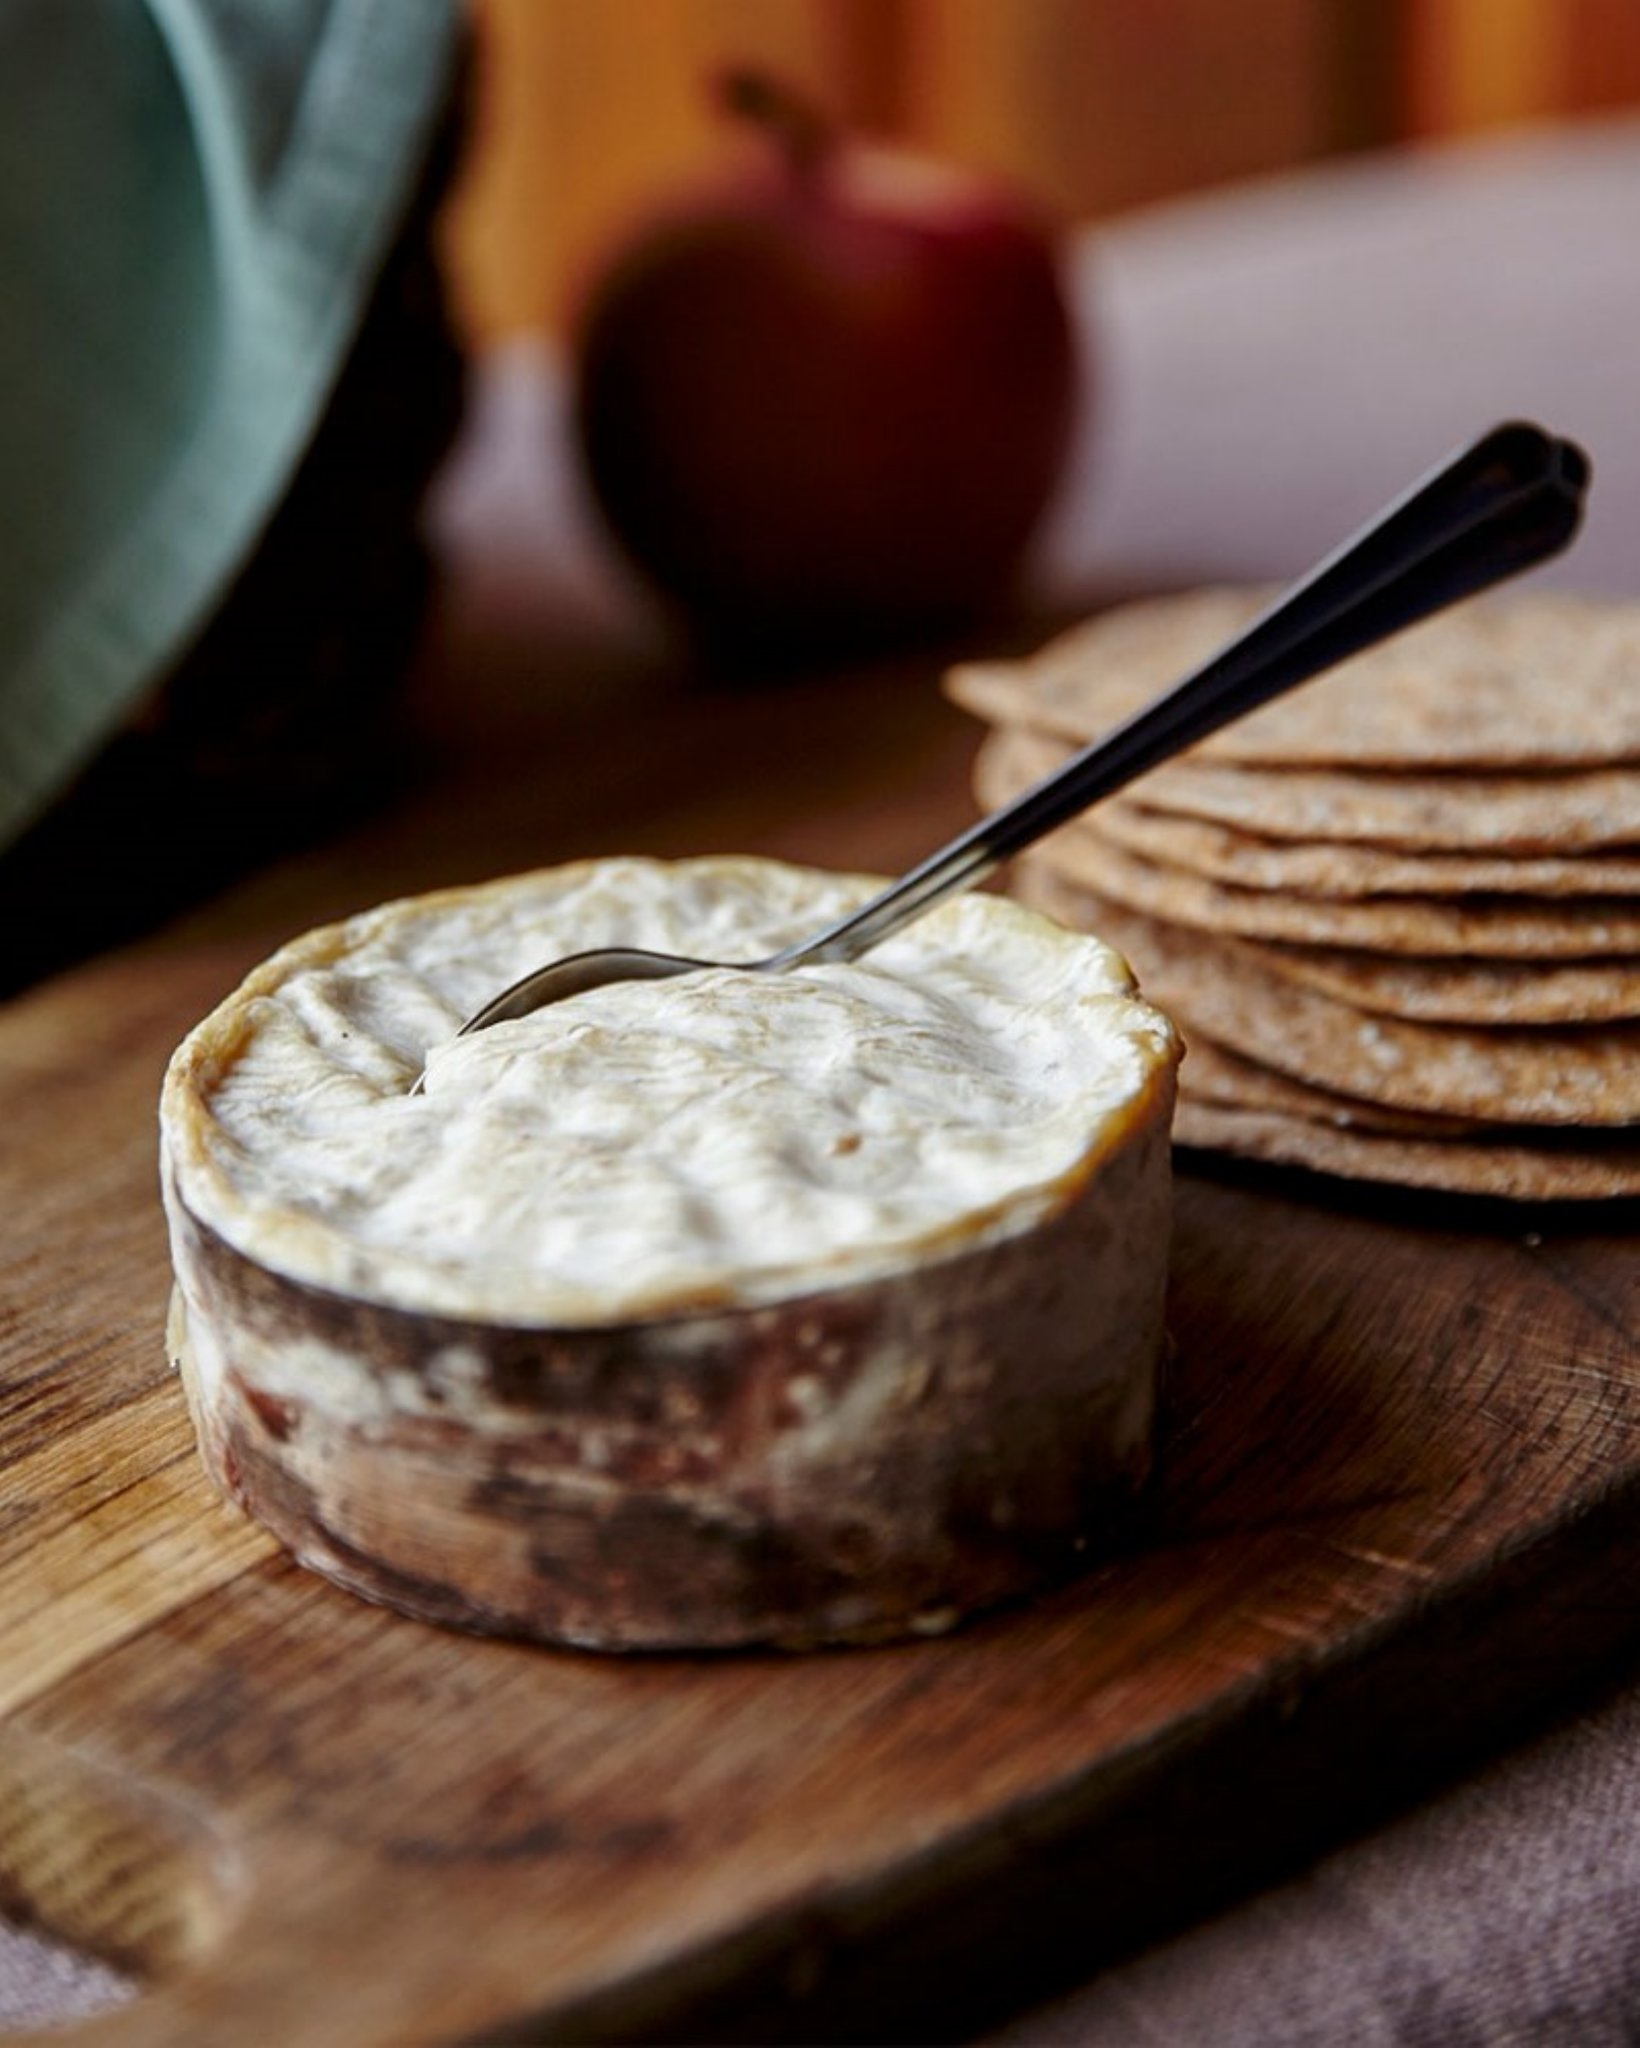 Winslade - Vacherin/Camembert cross from the Hampshire Cheese Company